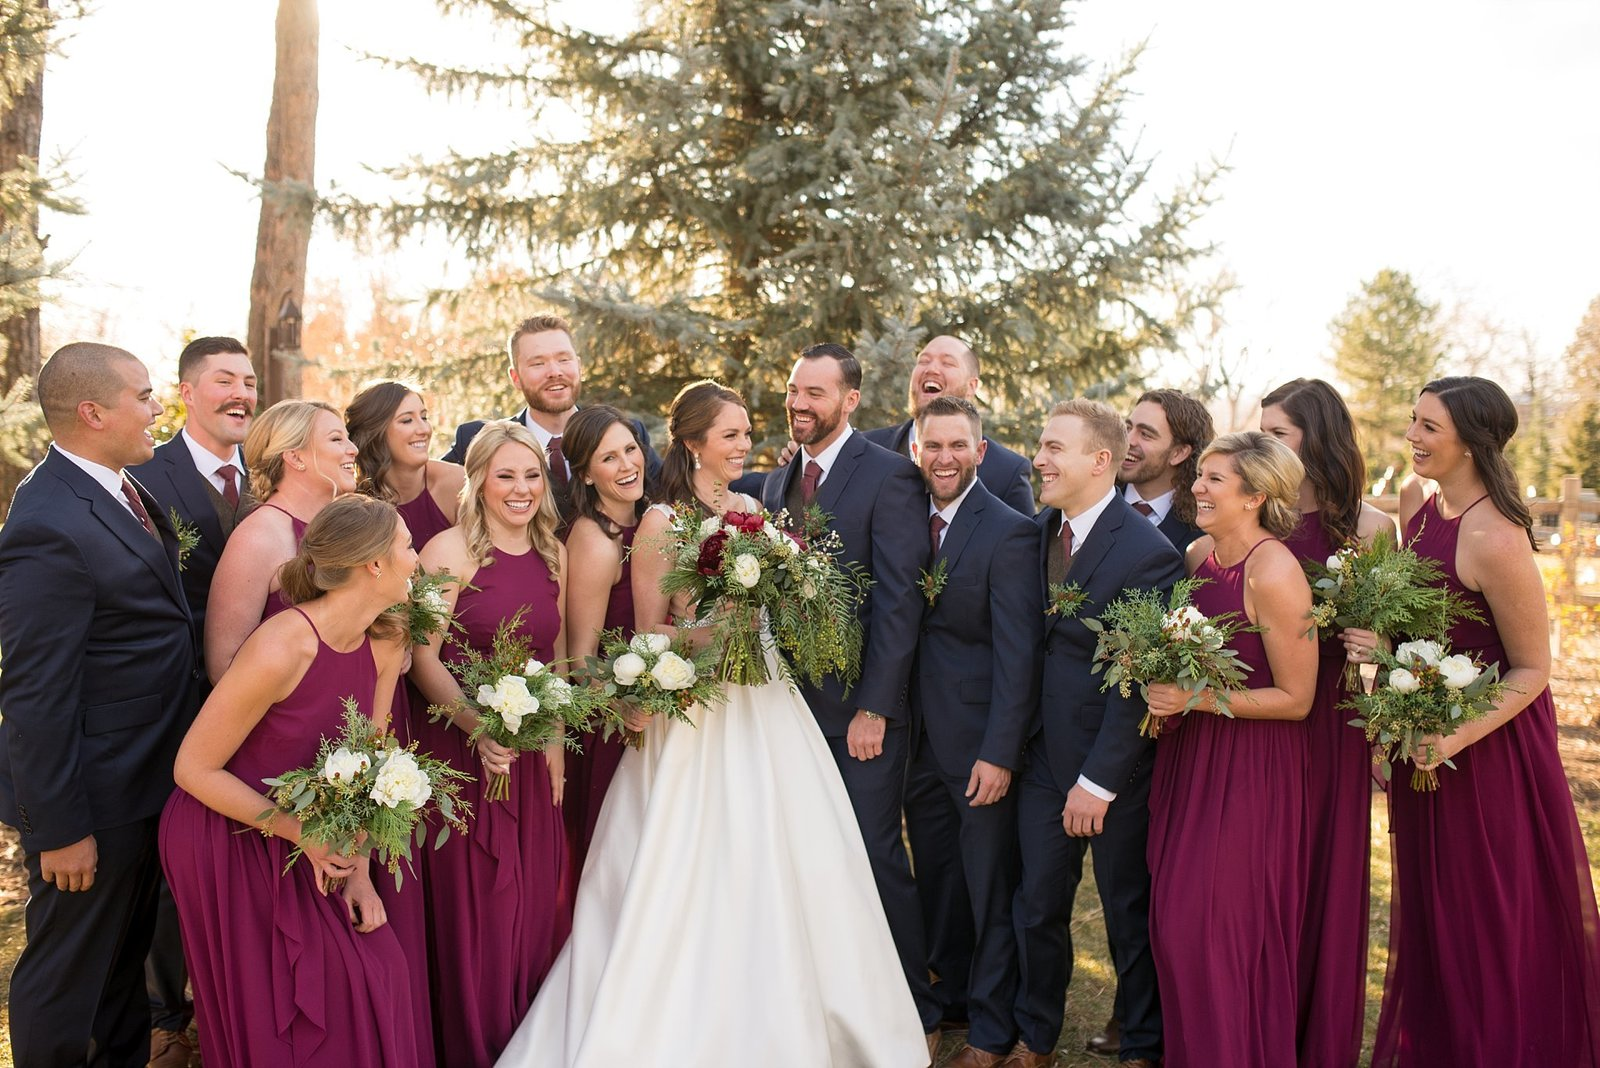 Elizabeth Ann Photography, Denver Wedding Photographer_2611